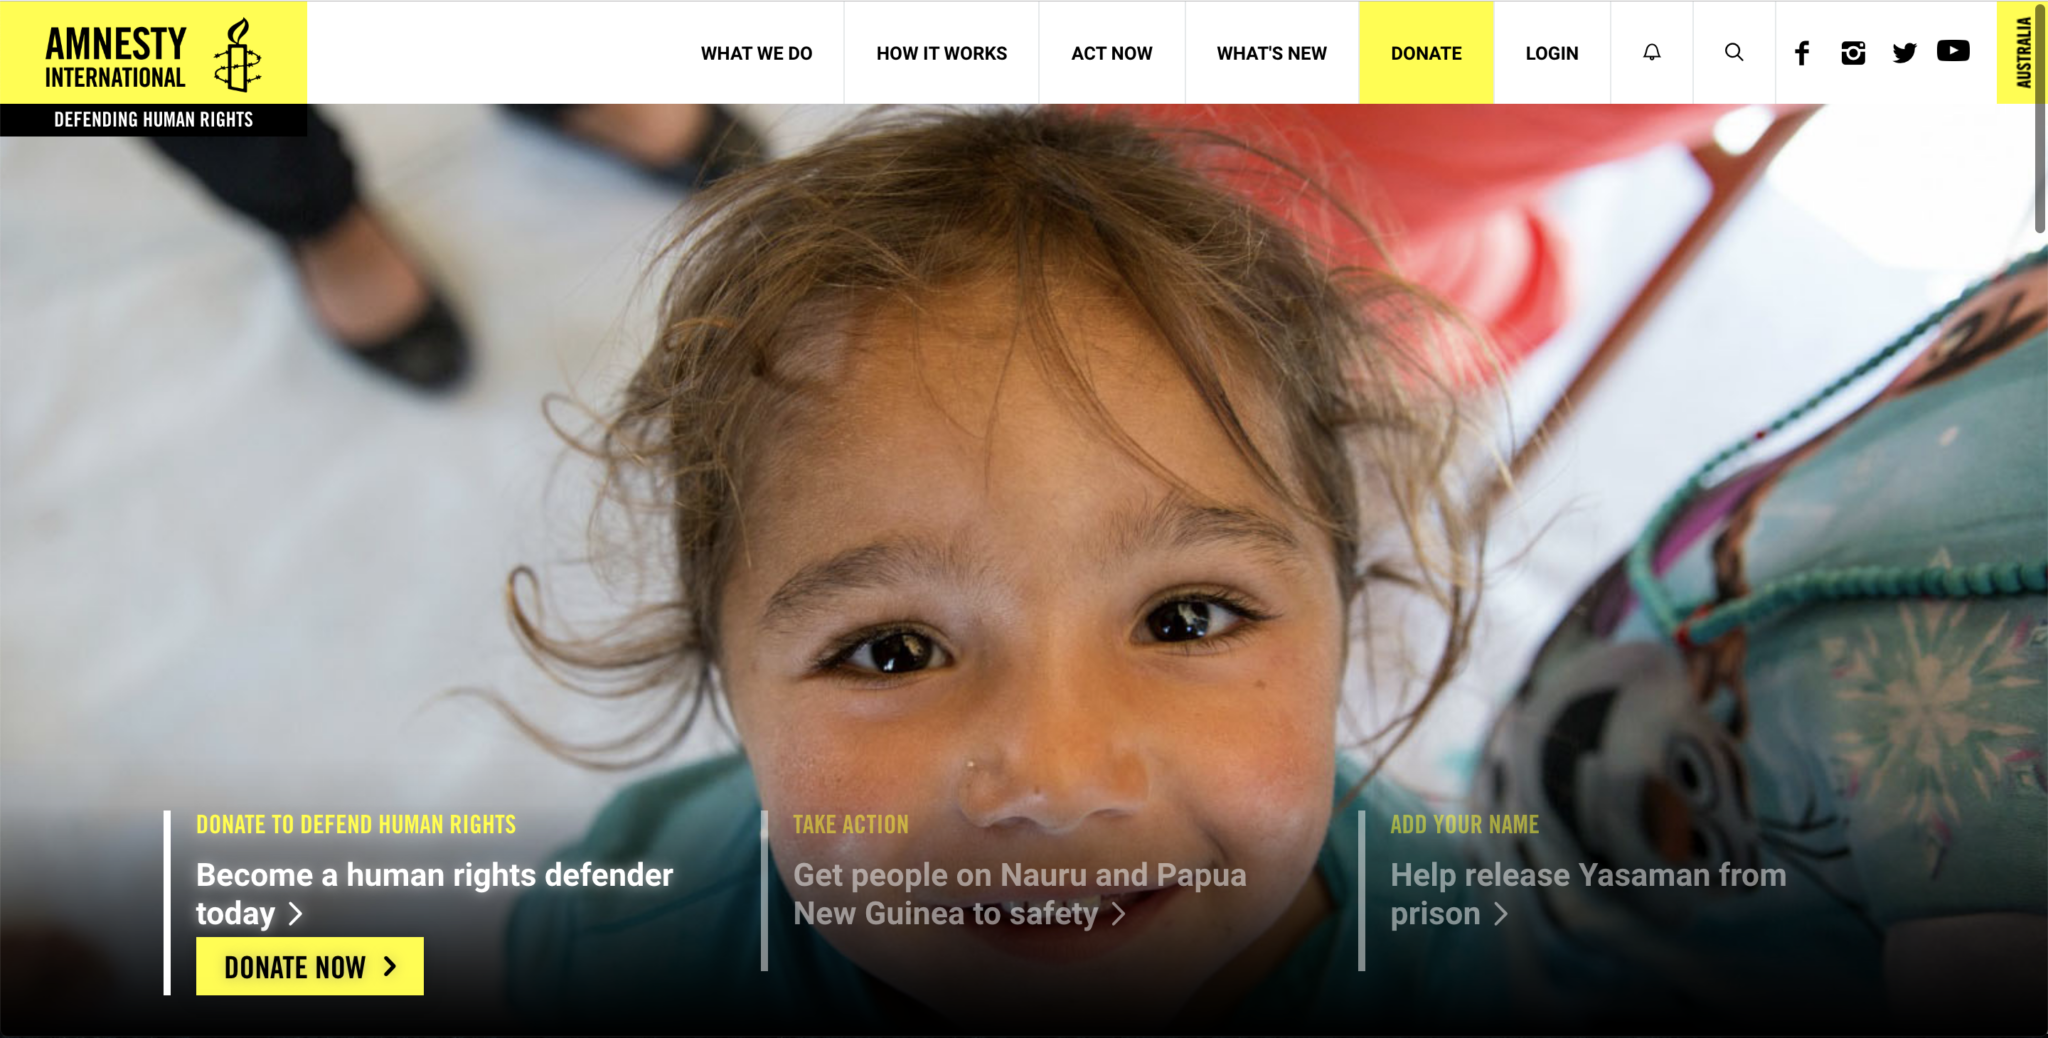 Image of hero section - Amnesty International Australia home page